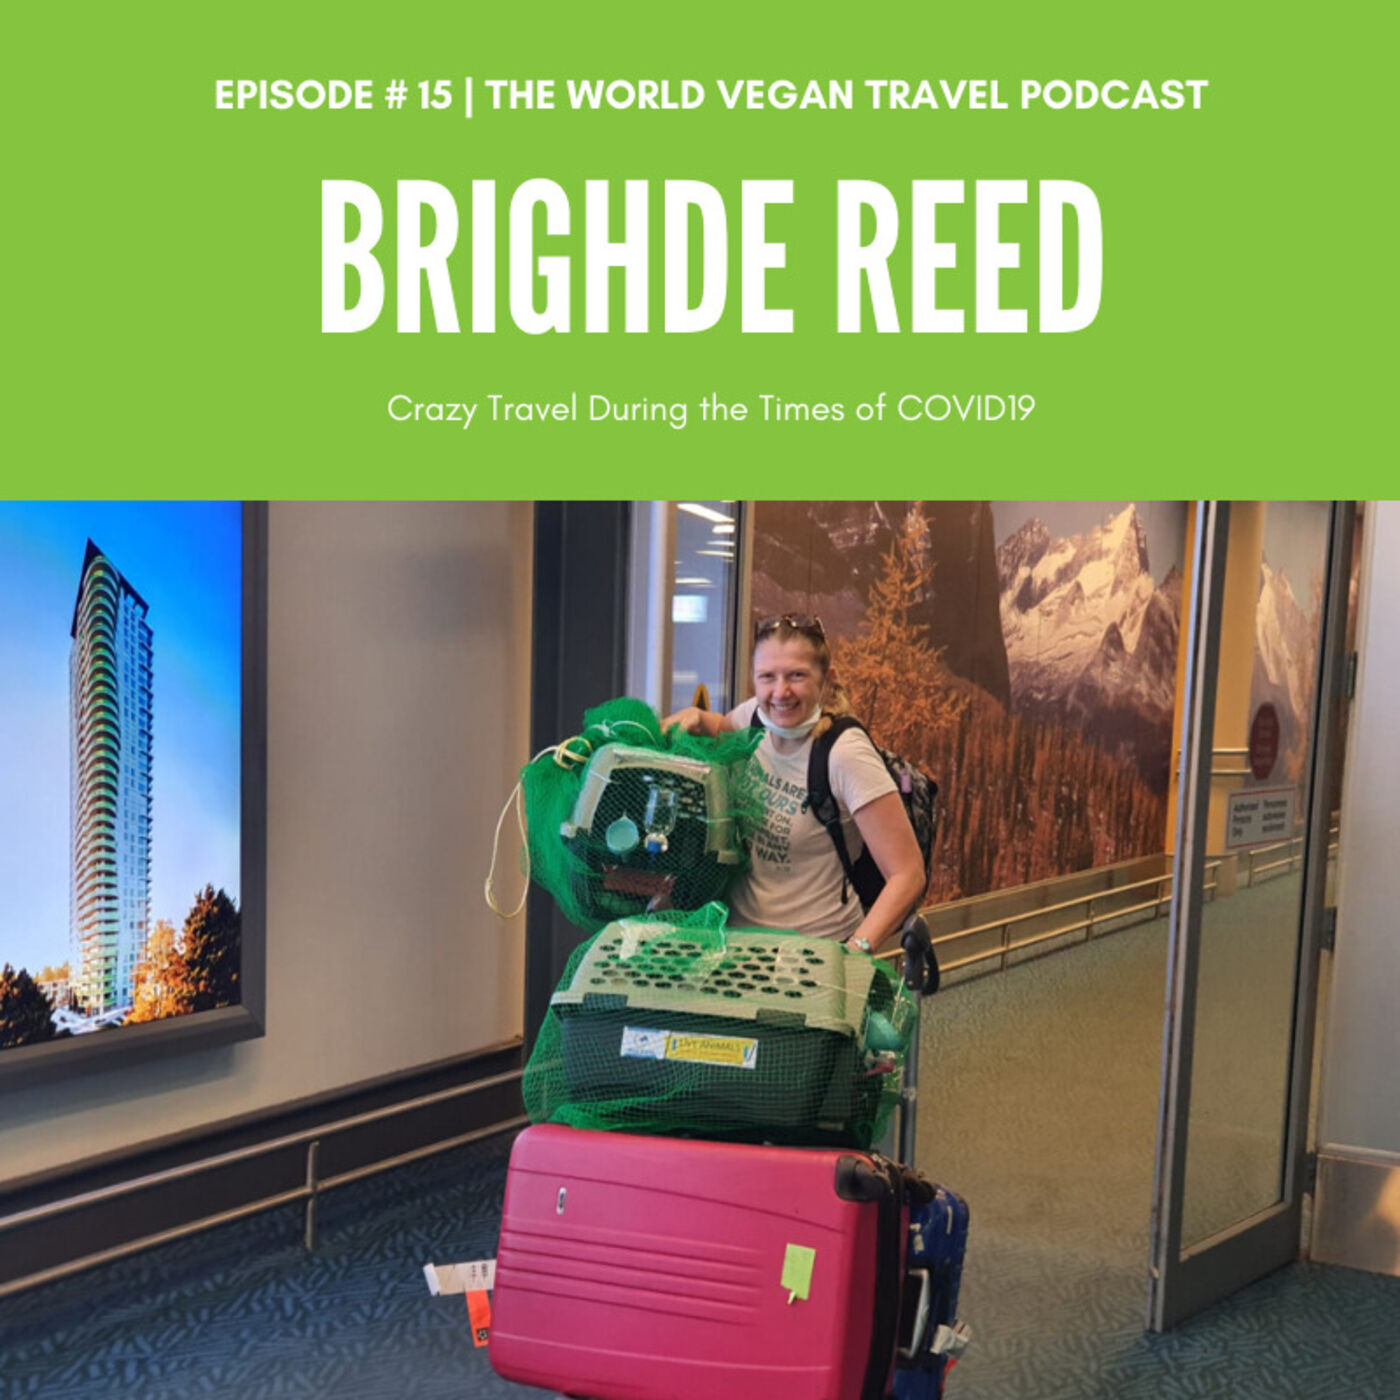 # 15 | Brighde's Crazy Travel During the Times of COVID19